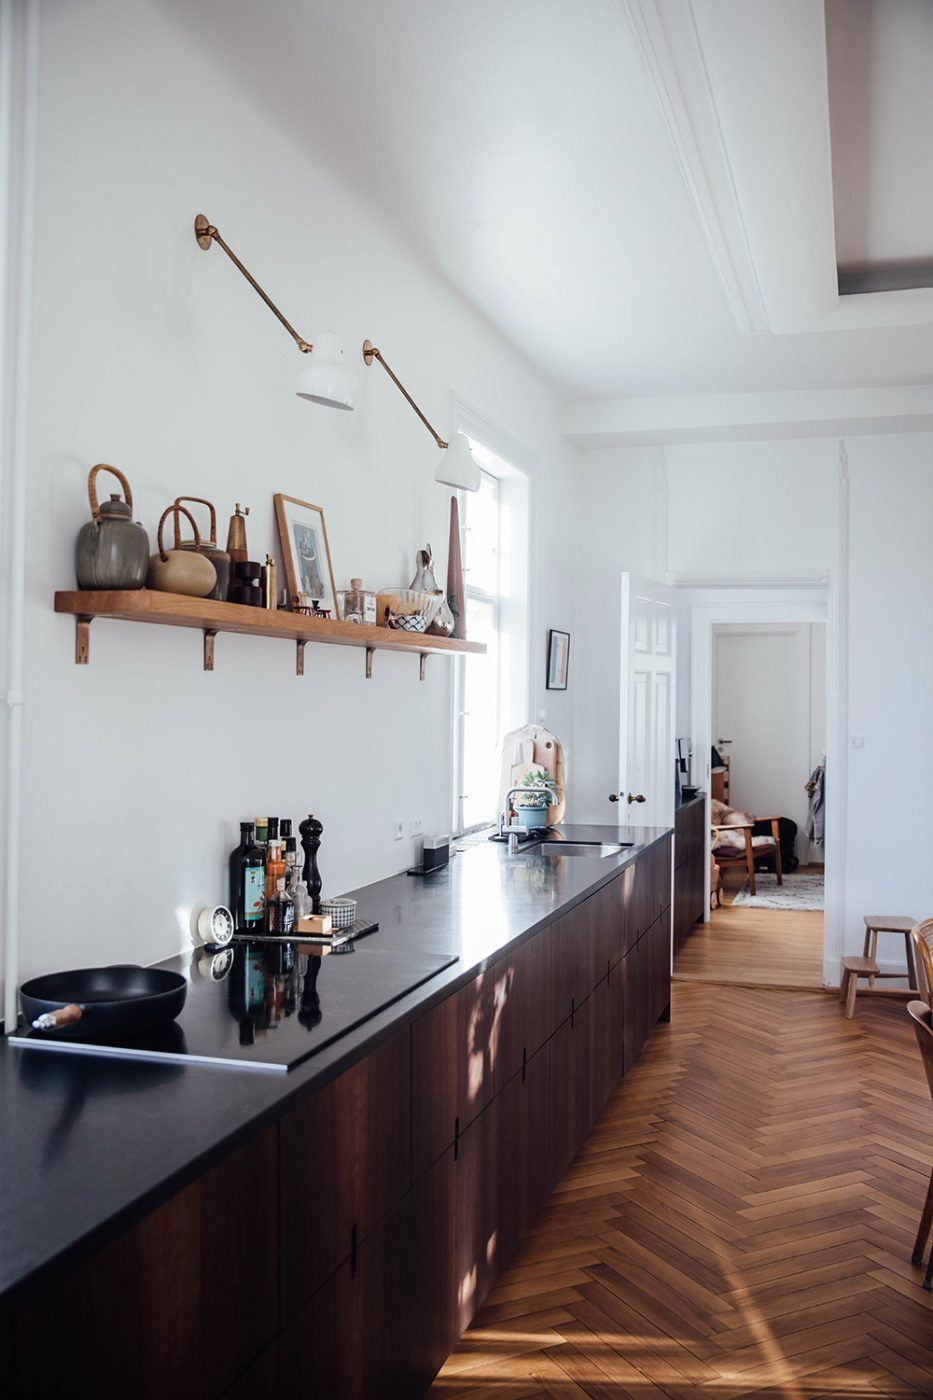 The Nordroom - A Copenhagen Apartment Bathing in Natural Light